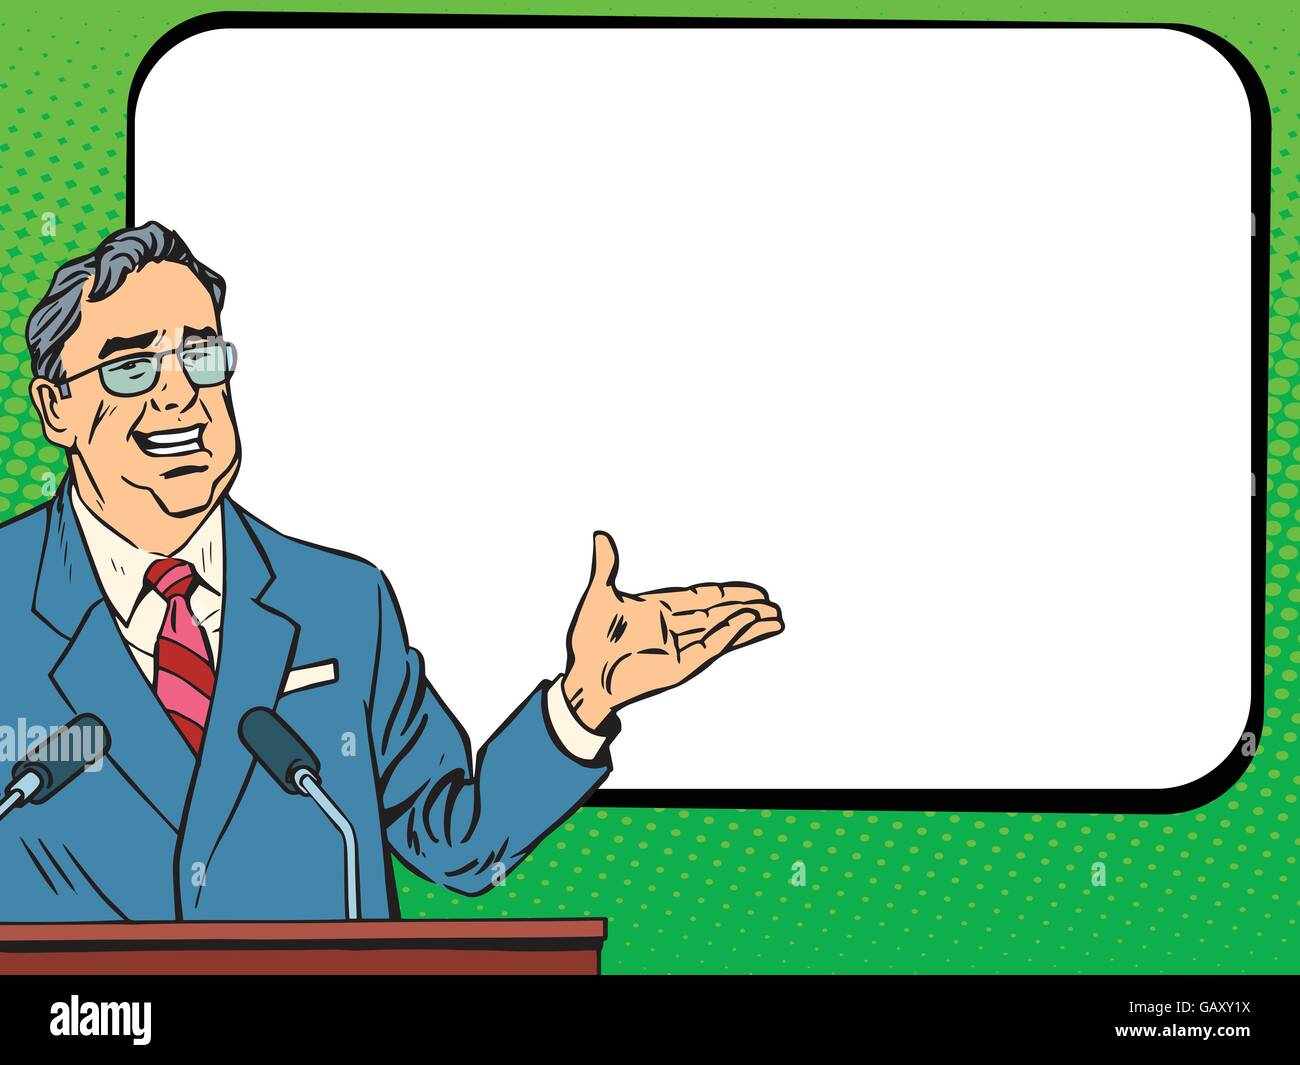 Boss business man speaking at podium, lecture or presentation - Stock Vector